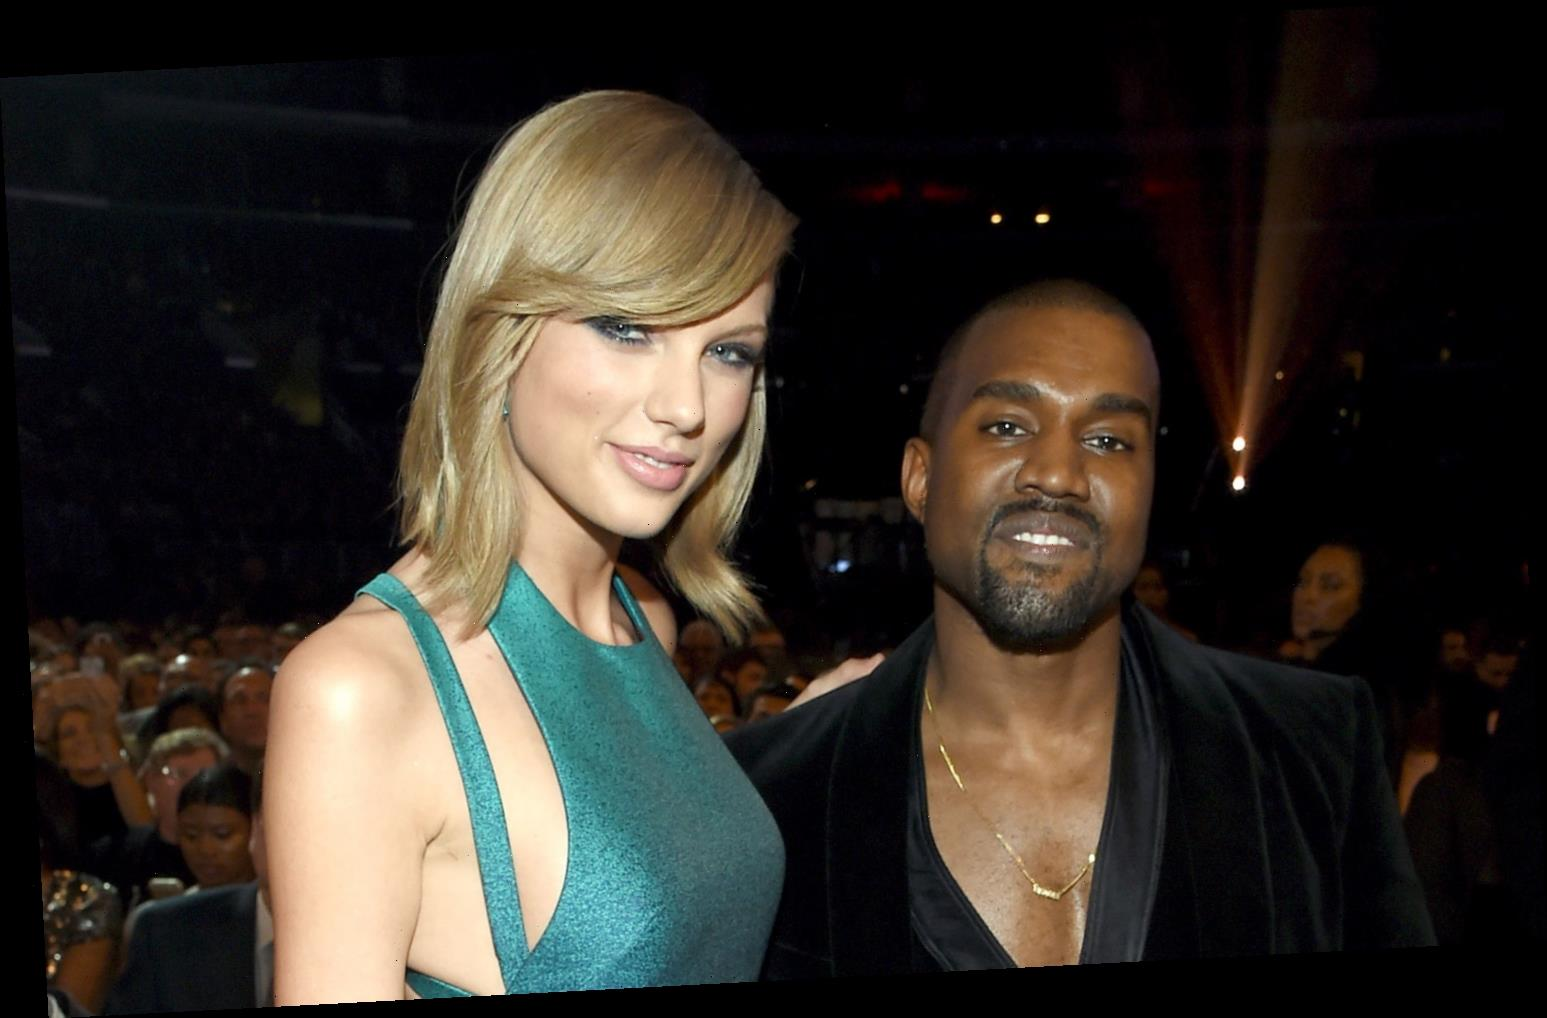 Taylor Swift's Full Phone Call with Kanye West Leaks Online, Proves Her Side of the Story